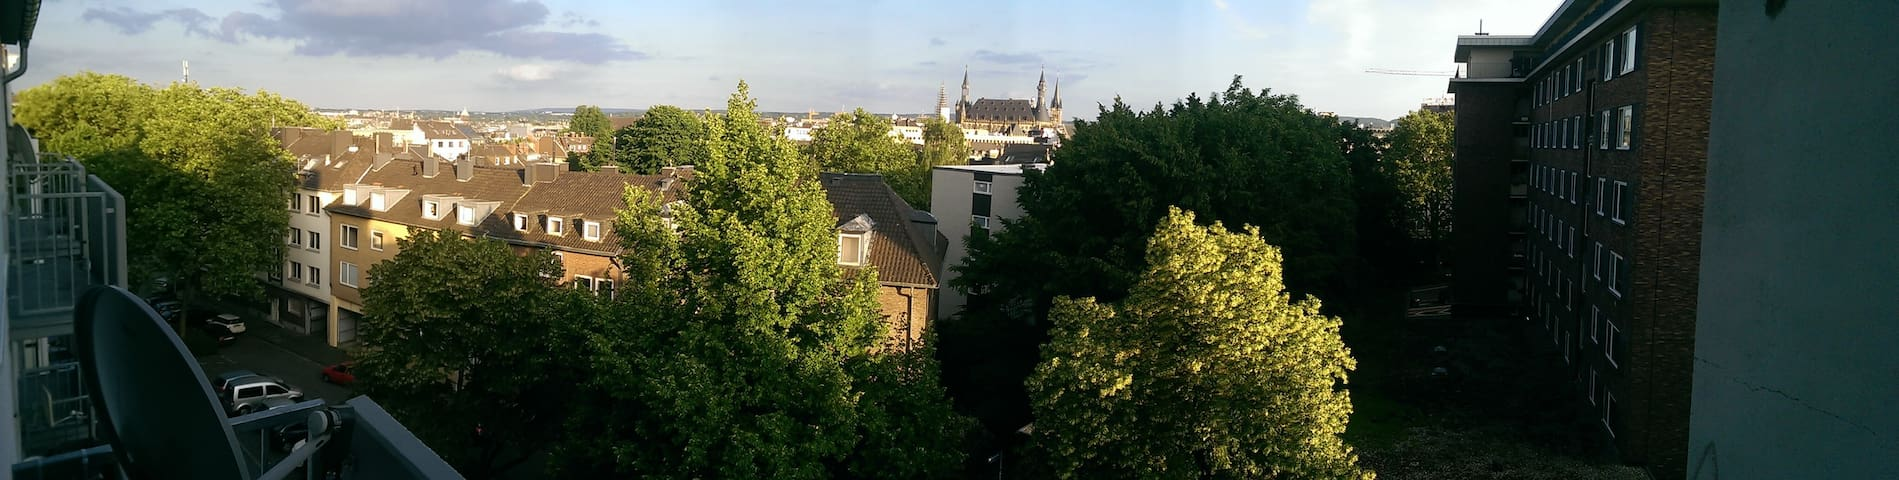 At the Campus in the heart of Aachen - Aachen - Apartemen